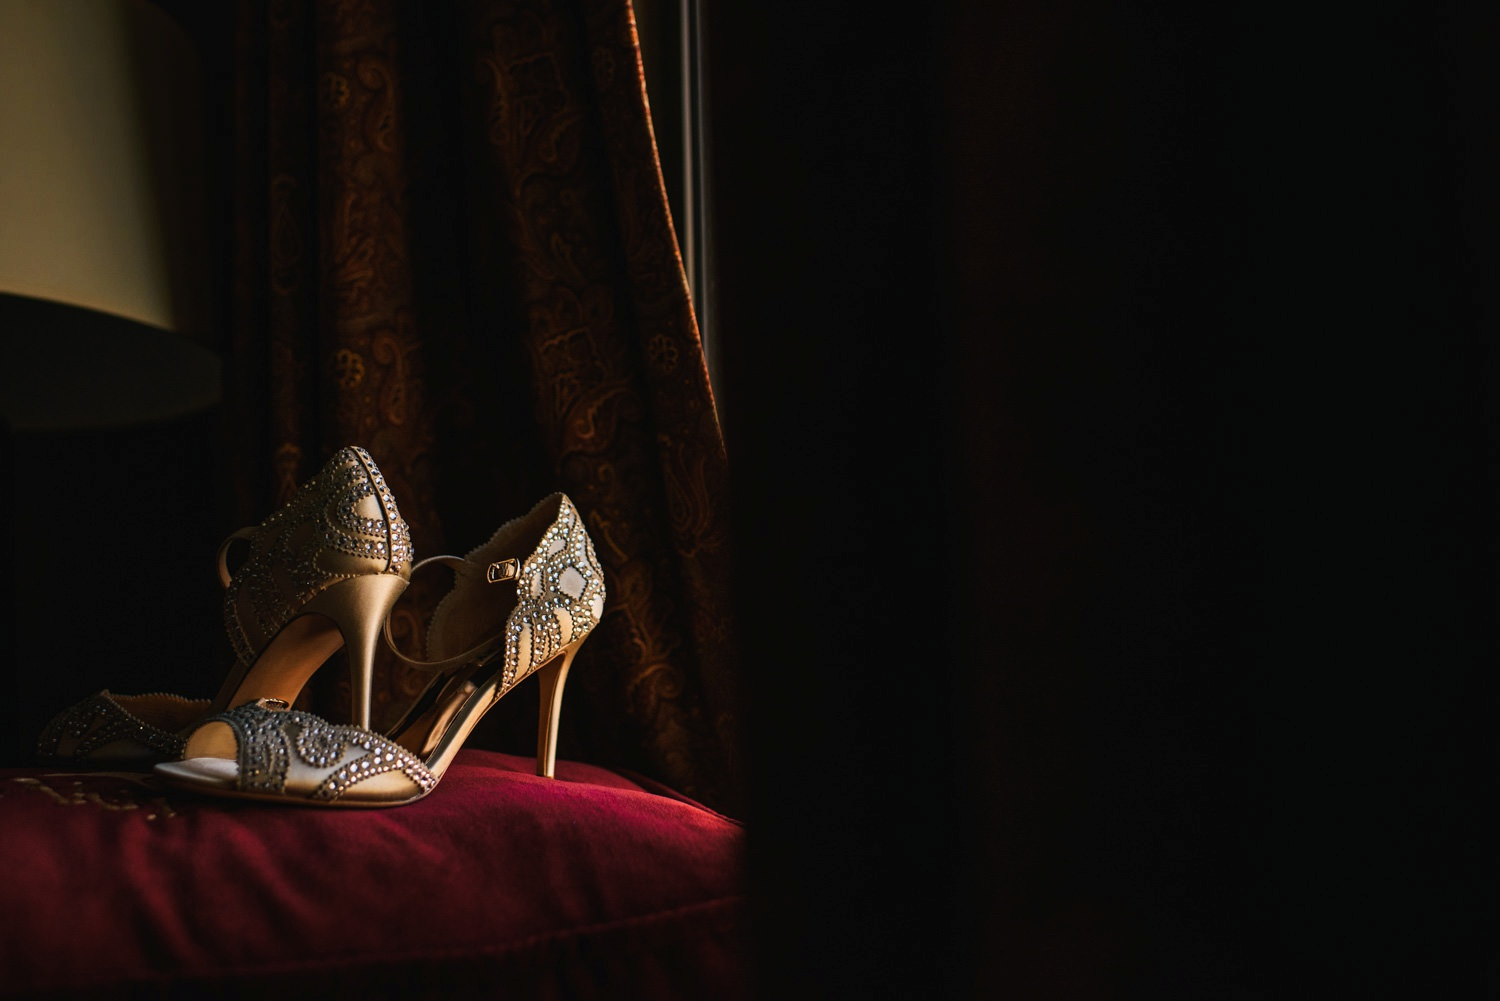 wedding shoes in window light